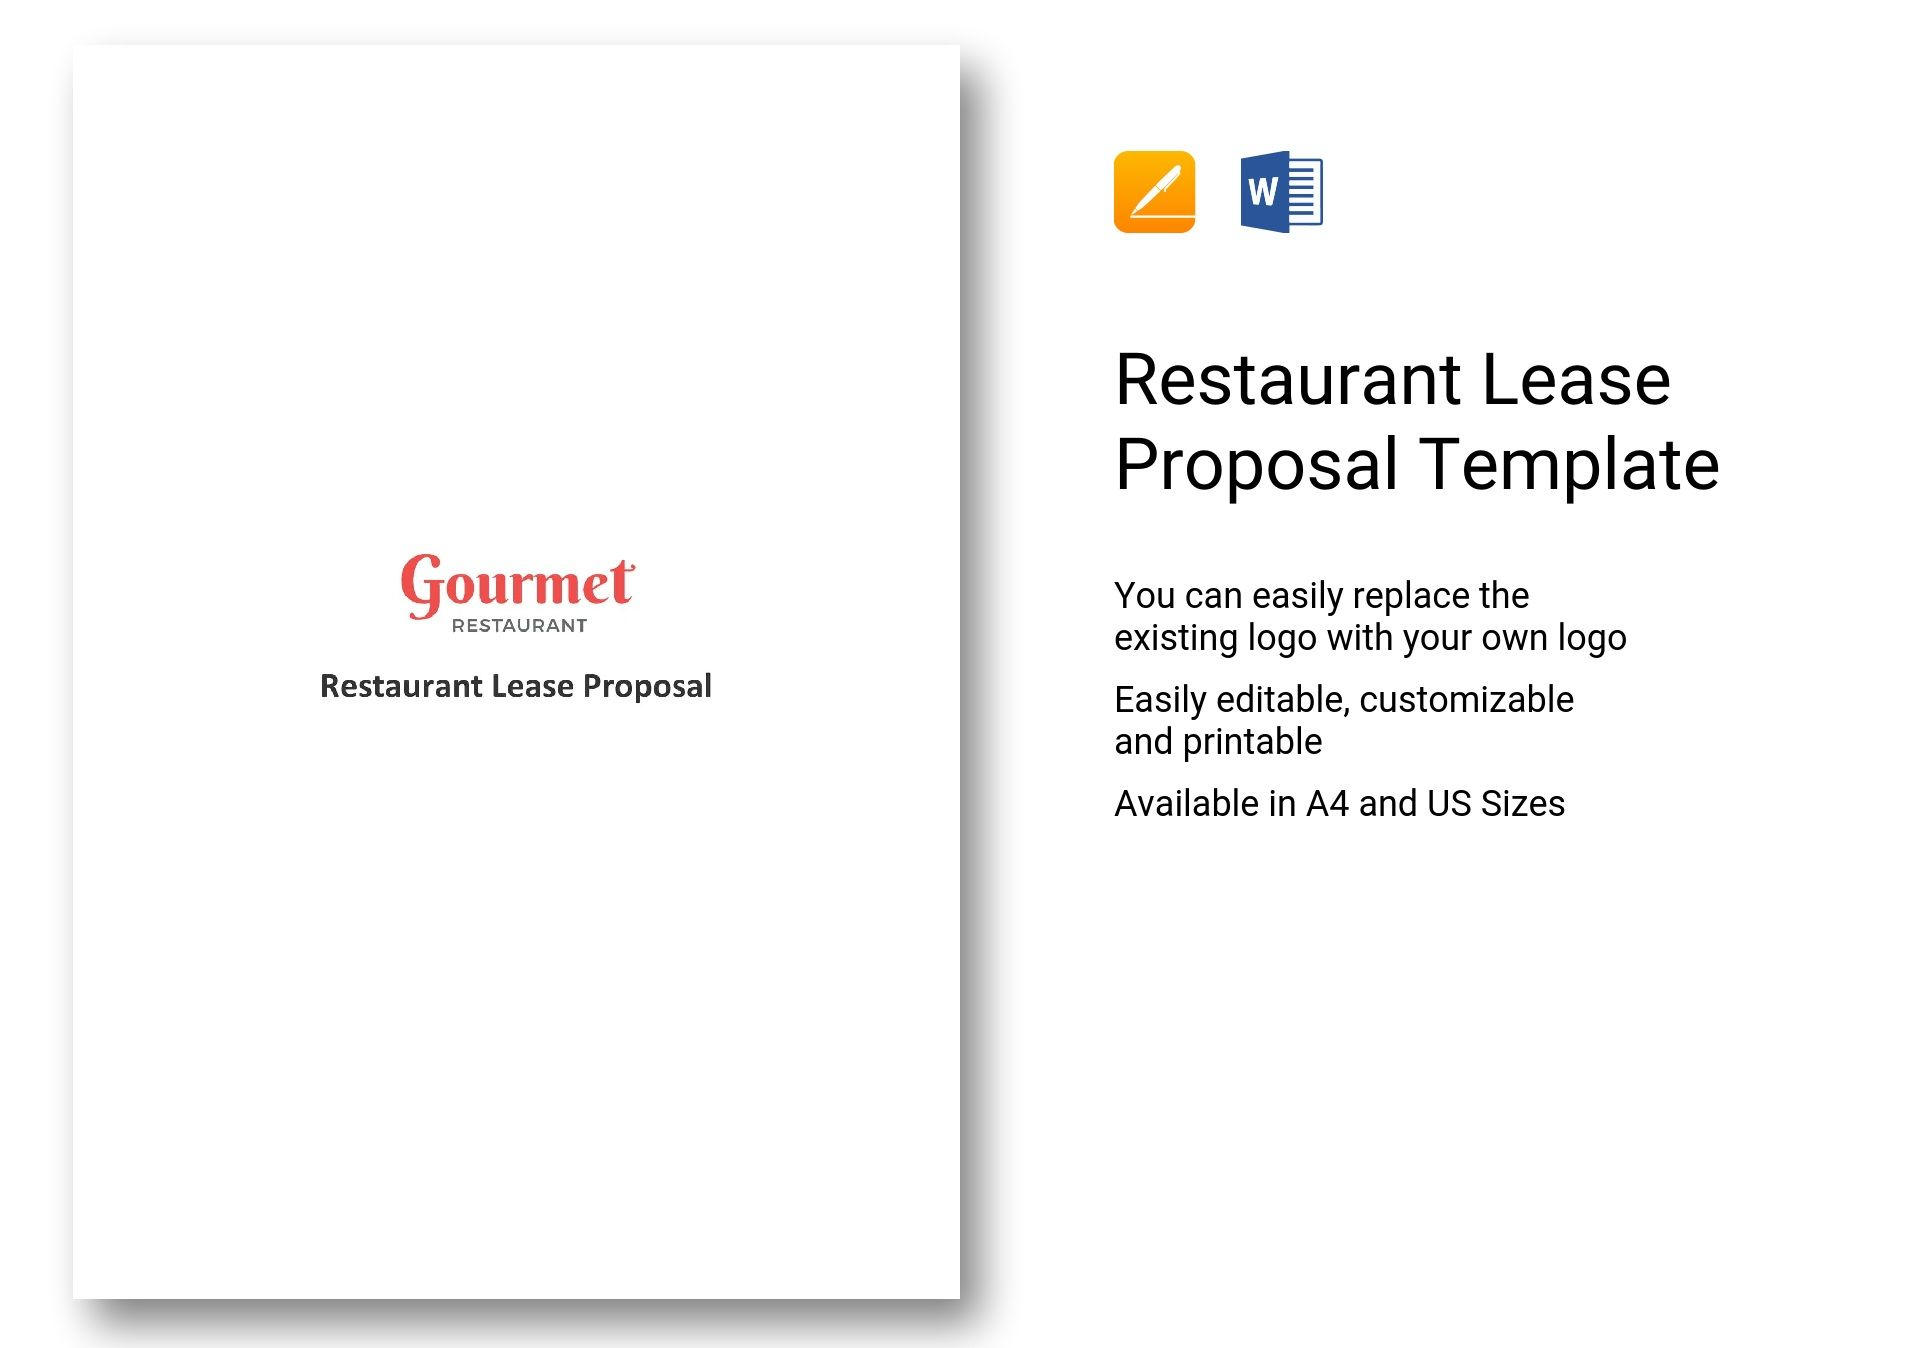 Restaurant Lease Proposal Template In Word Apple Pages